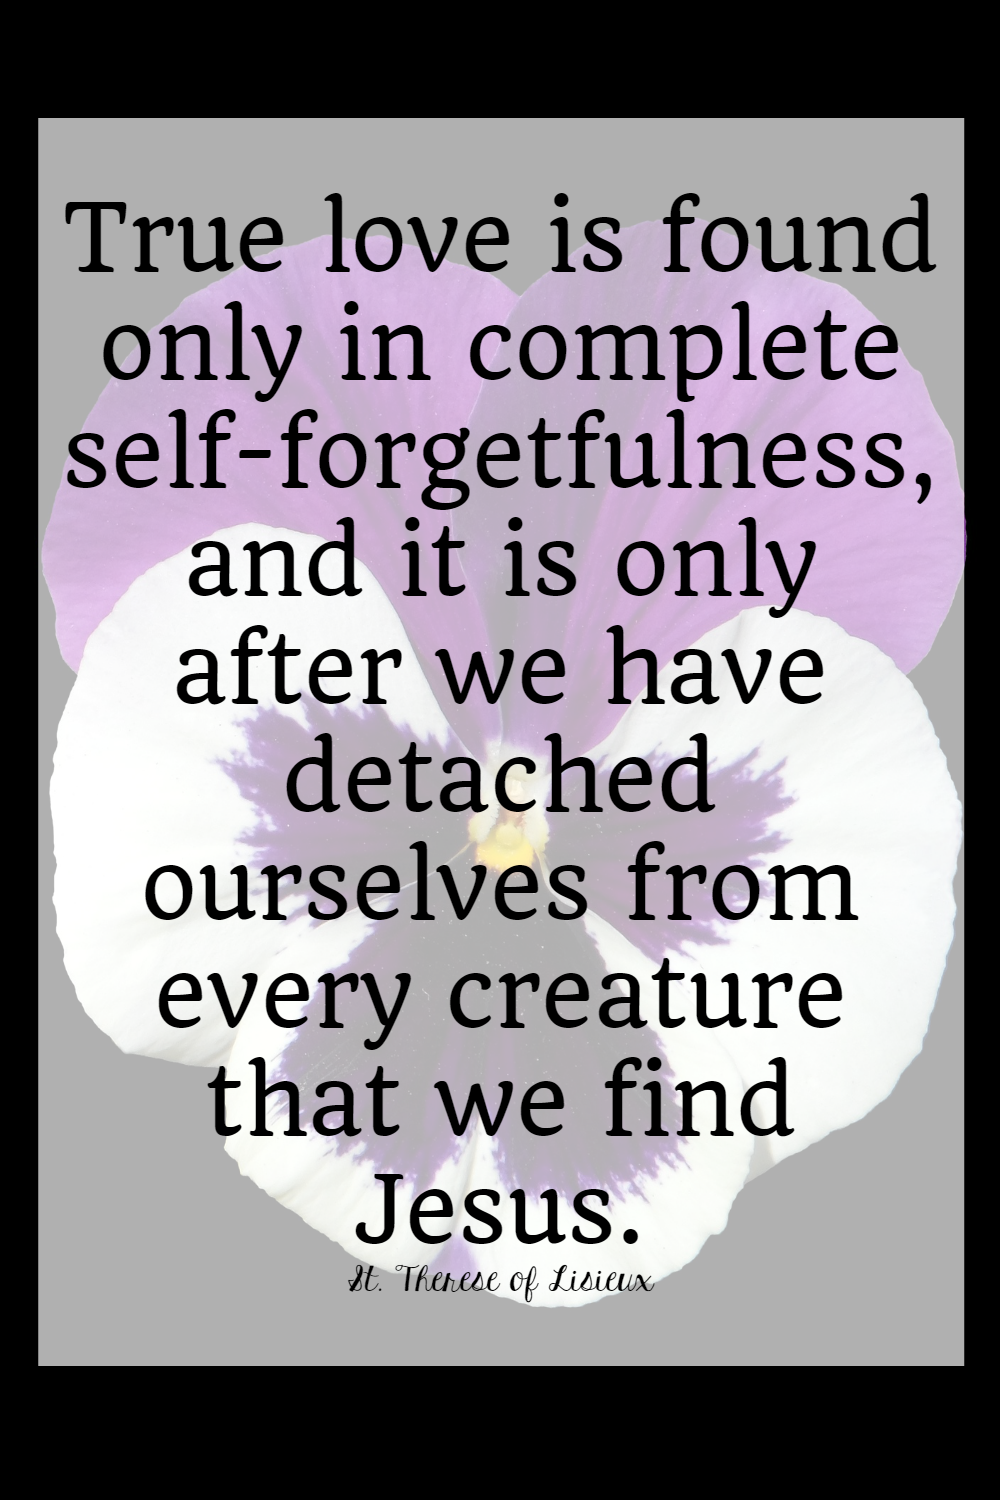 Saints Quotes Self Forgetfulness The Littlest Way Saint Quotes Saint Quotes Catholic Faith Quotes